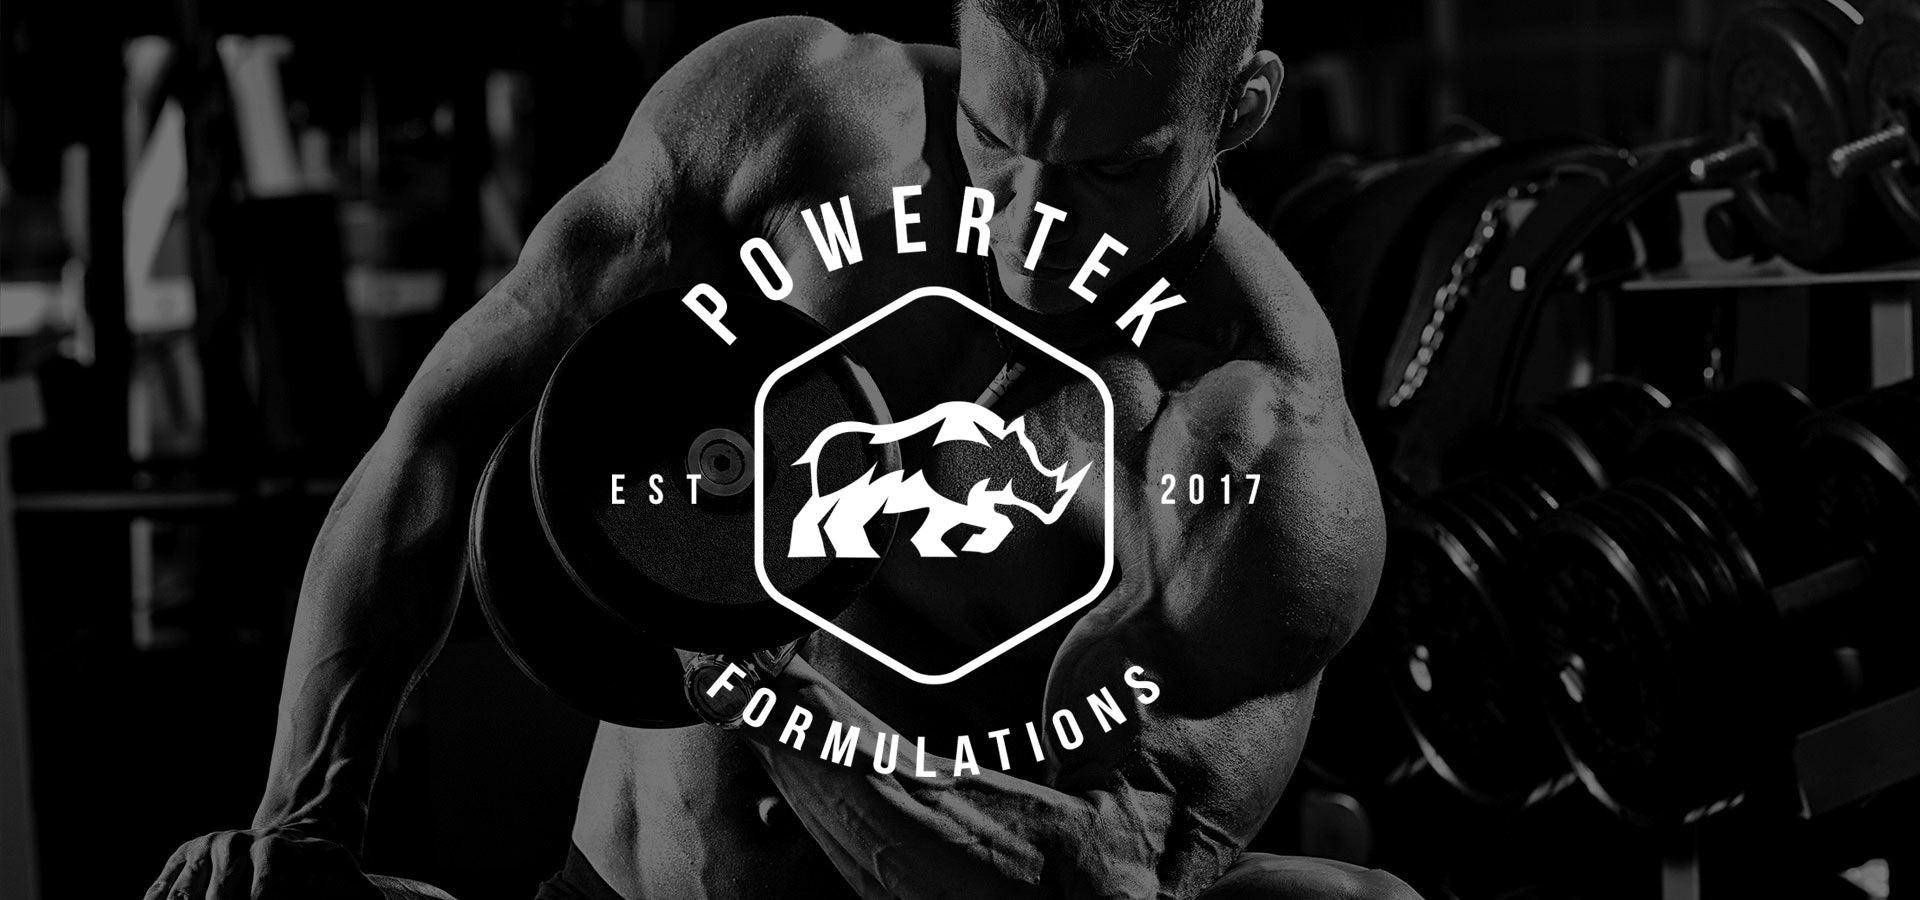 POWERTEK FORMULATIONS